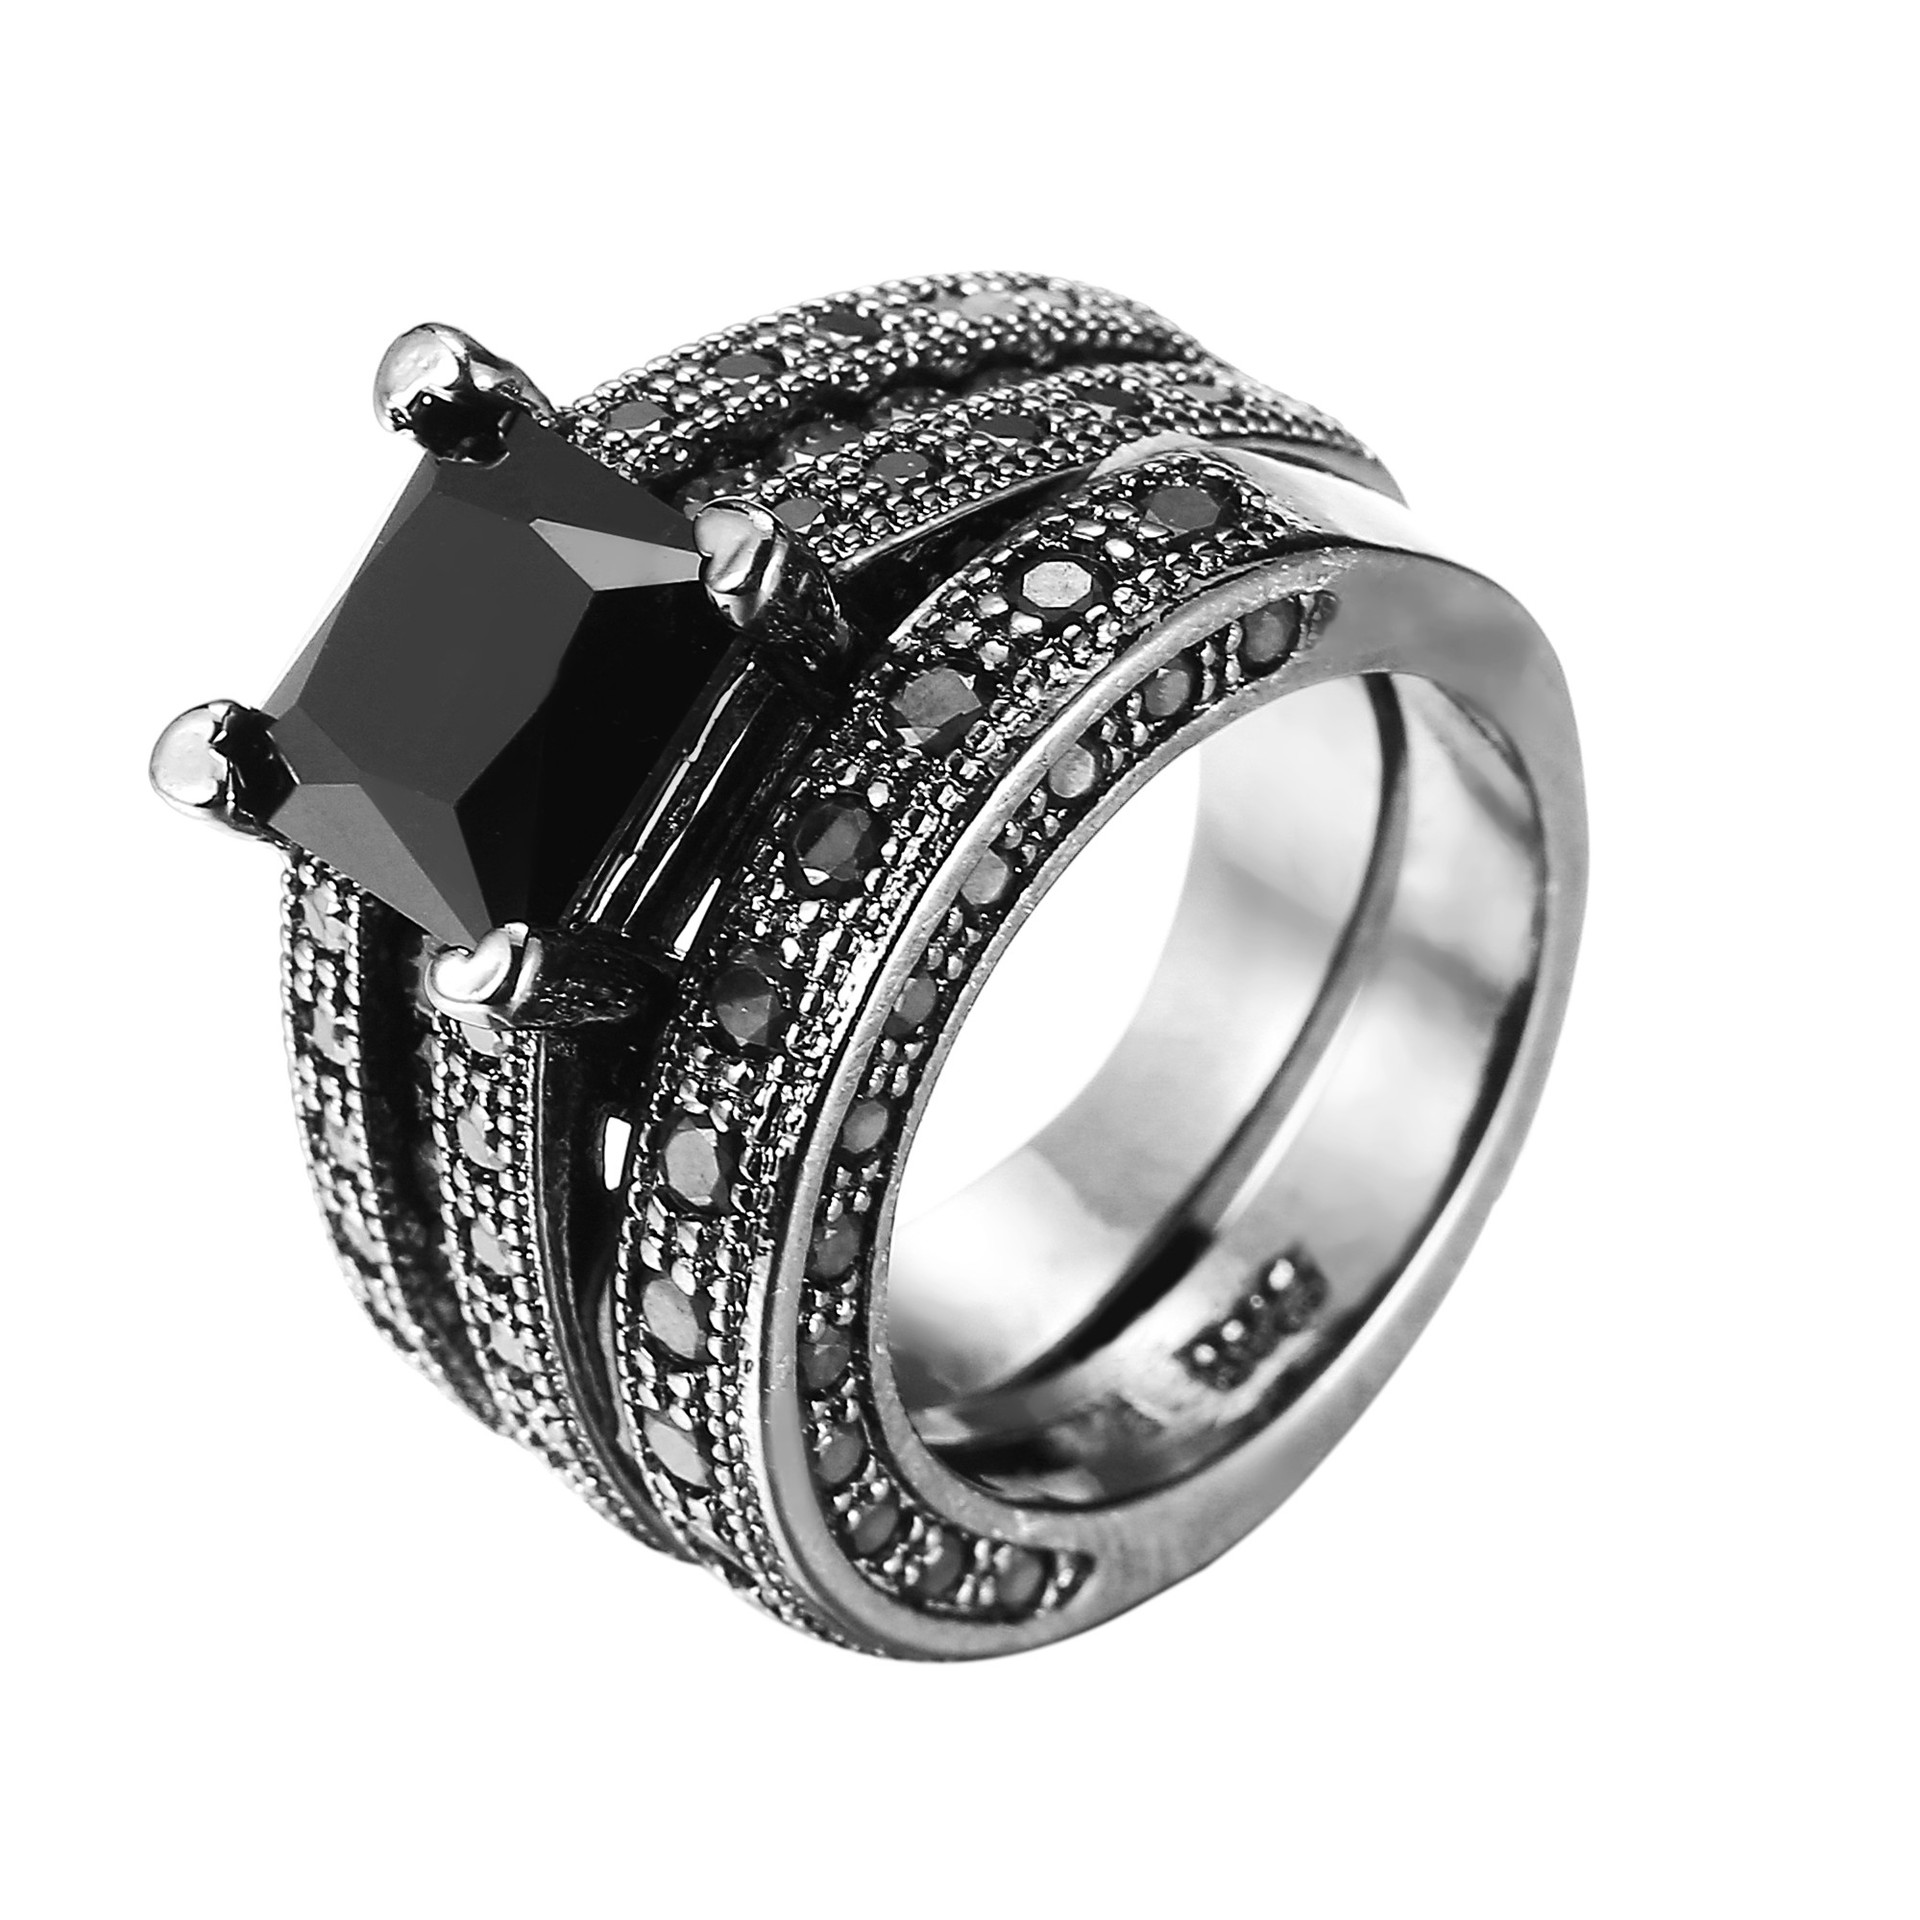 Black Ring Engagement-Ring 925-Silver jewelry Promise Fashion Women New Foydjew Suit